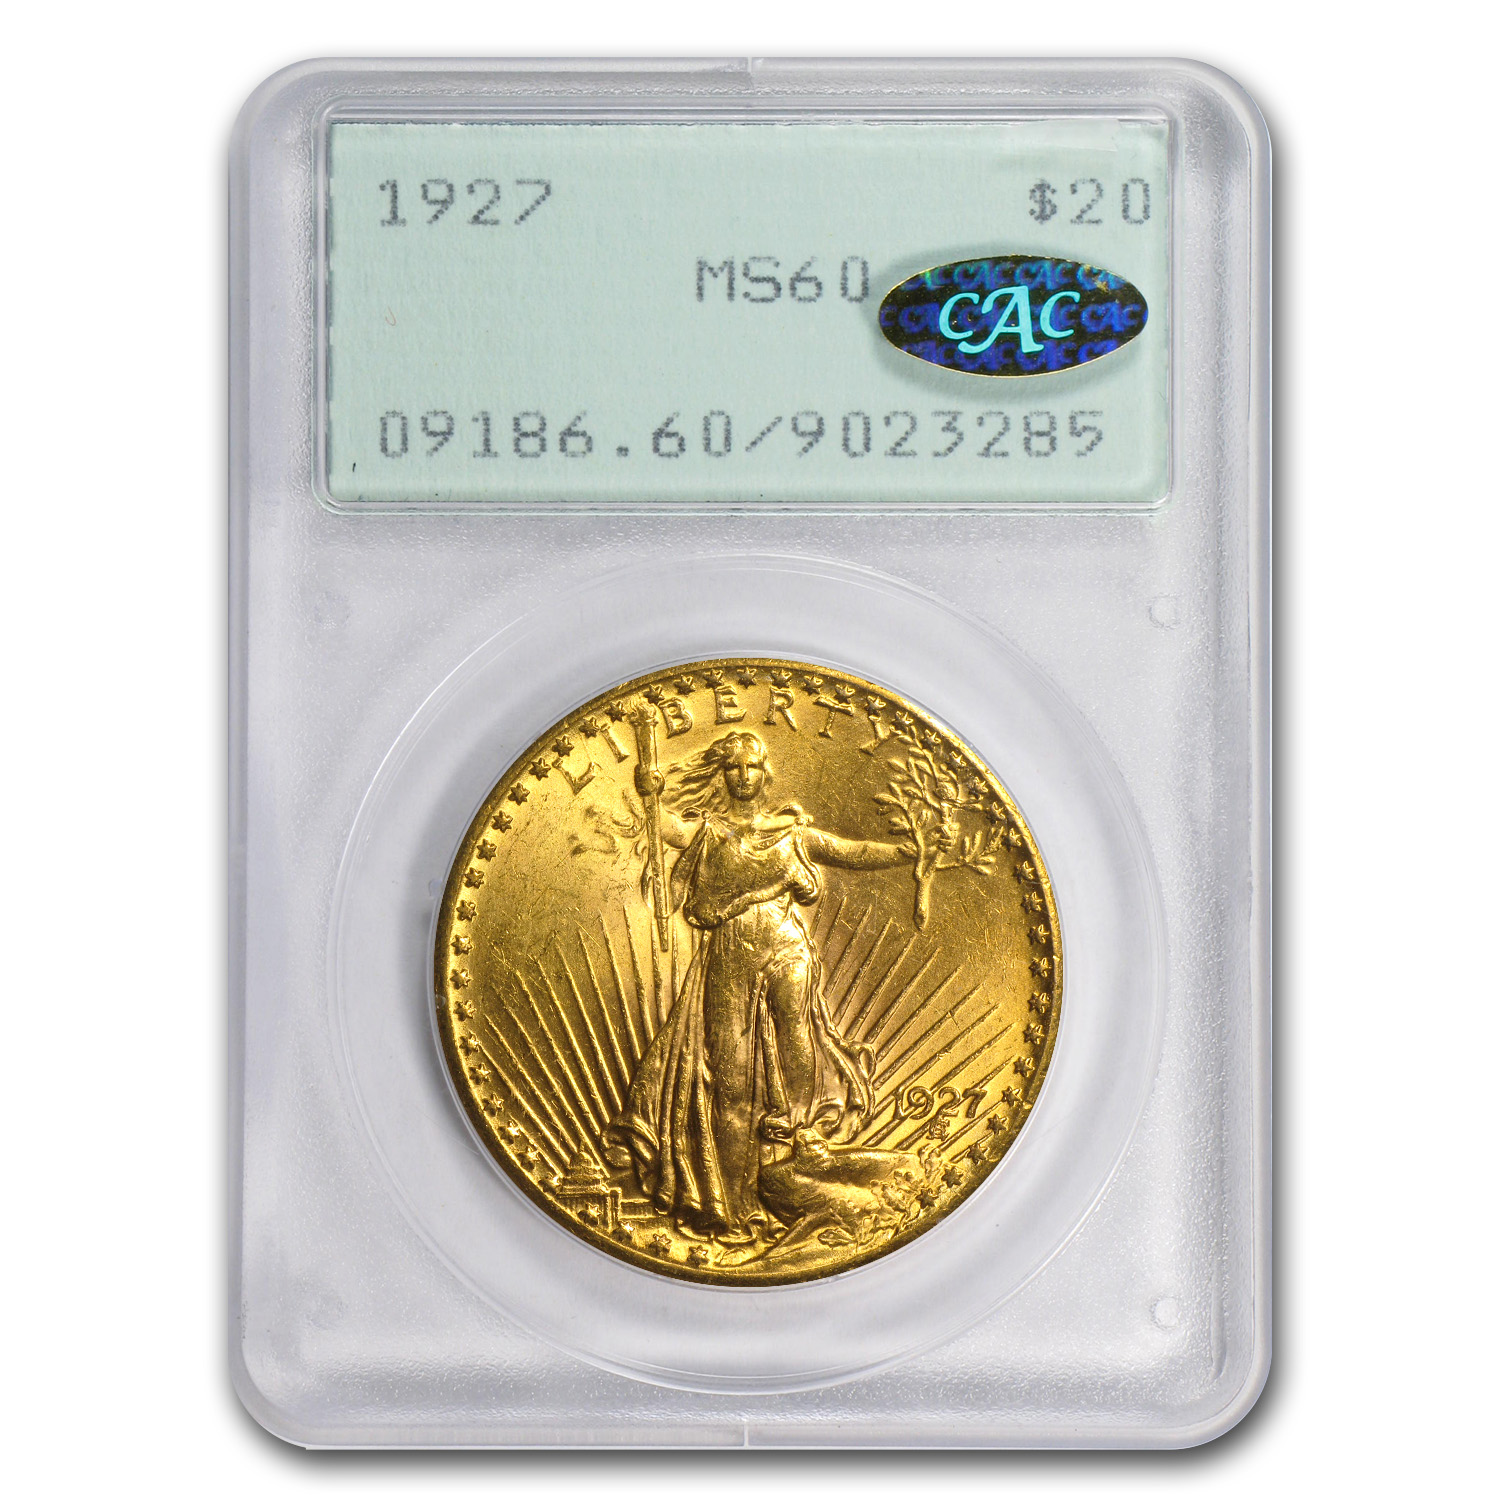 $20 Saint-Gaudens Gold Double Eagle - MS-60 PCGS/NGC GOLD CAC